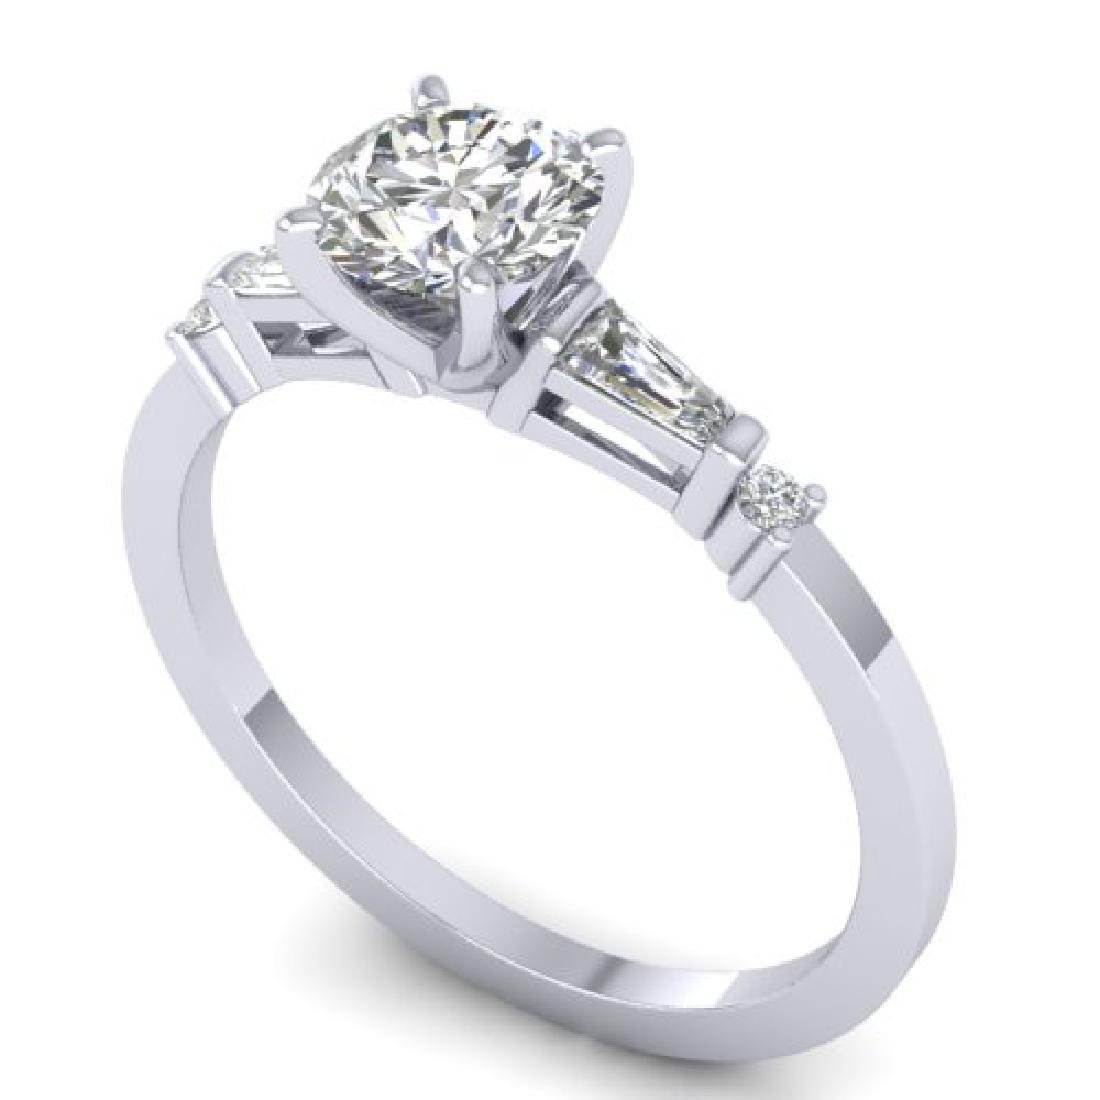 1.04 CTW Certified VS/SI Diamond Solitaire Ring 18K - 2